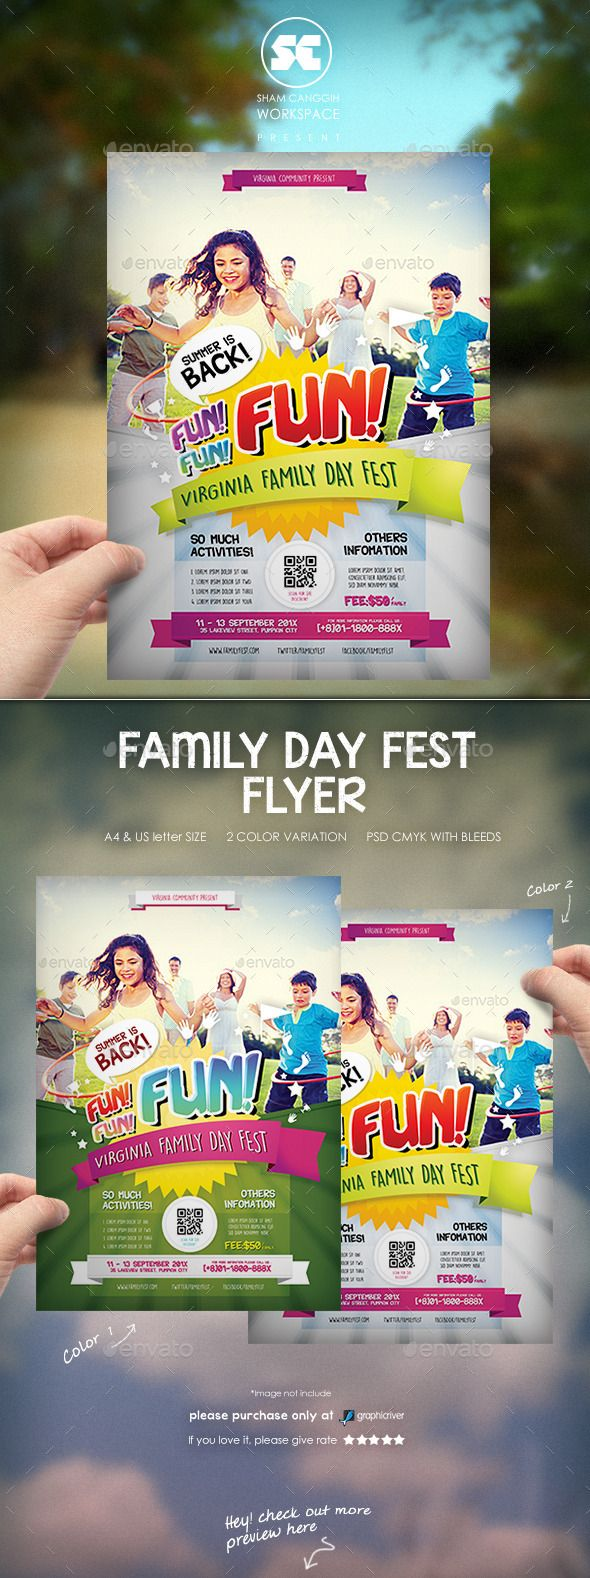 family day flyer miscellaneous events design pinterest flyer